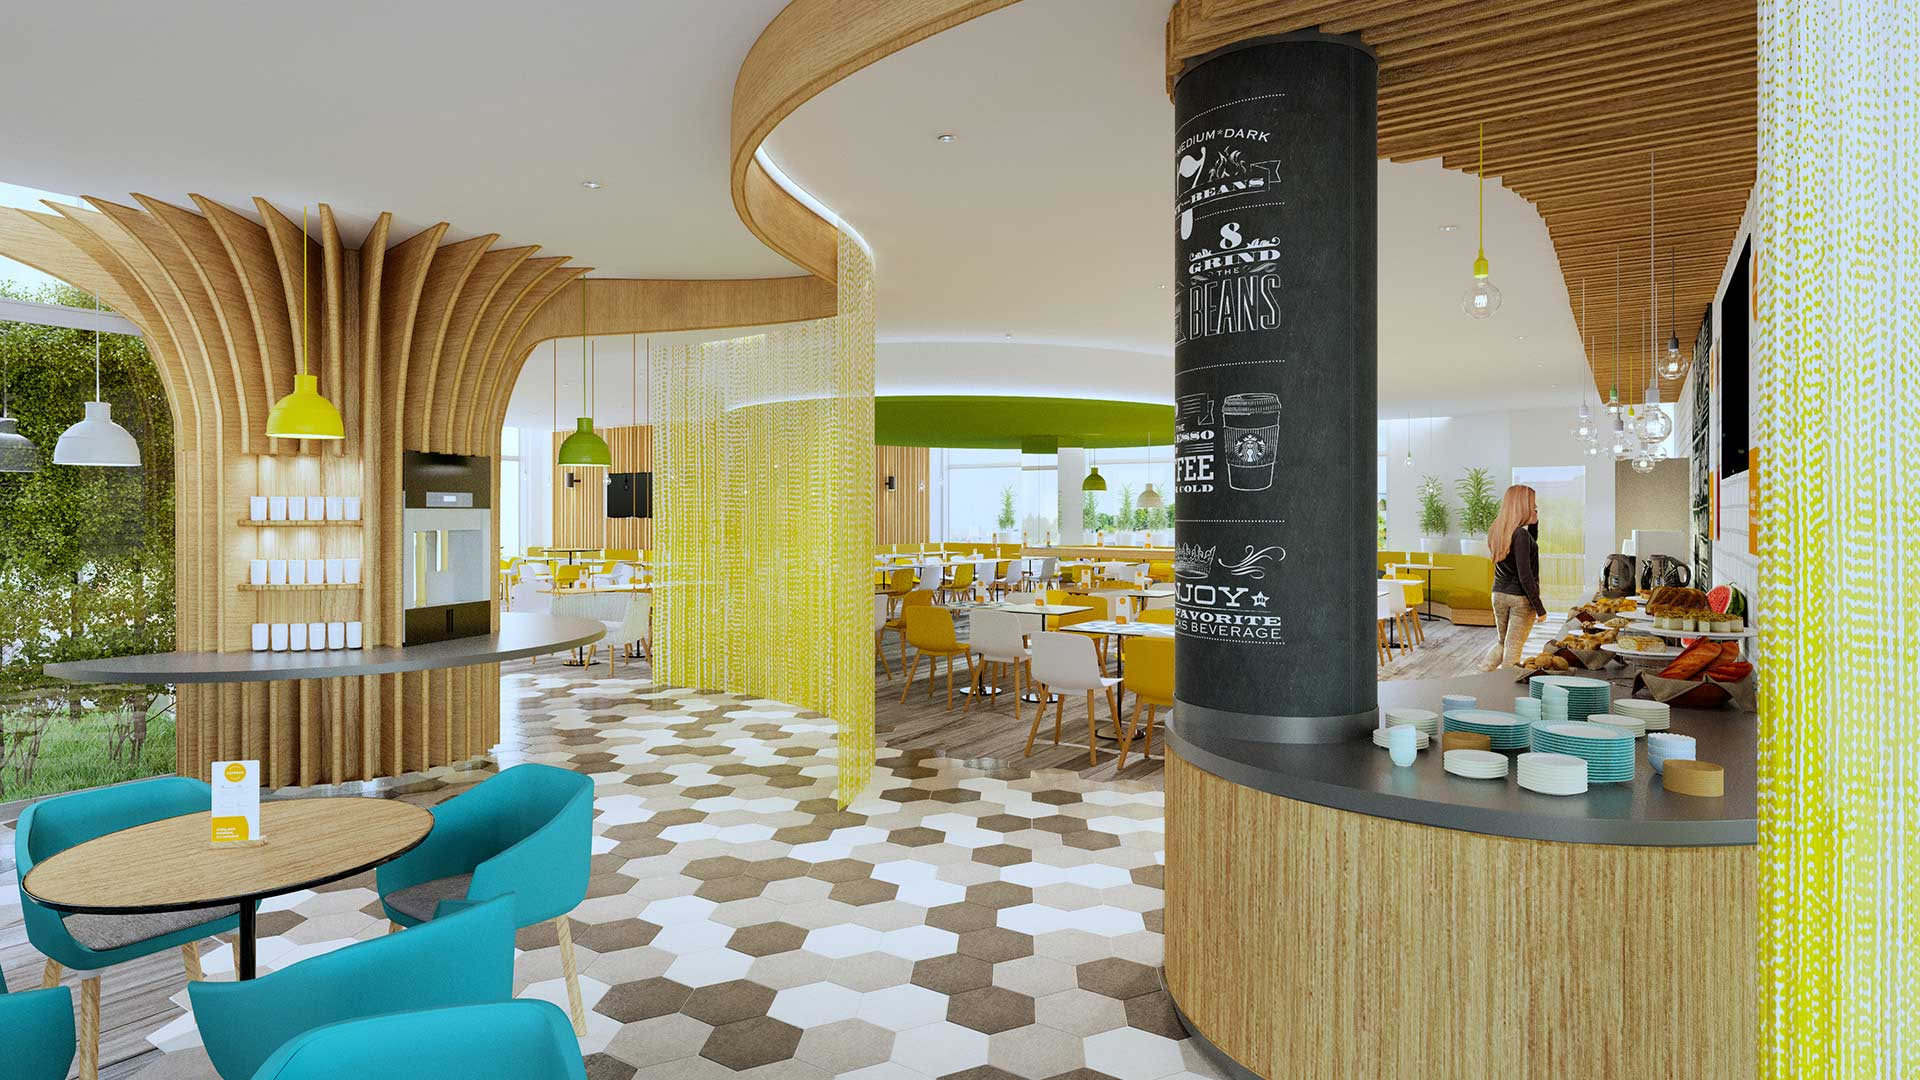 Photo of a 3D rendering of a restaurant made from computer generated images.